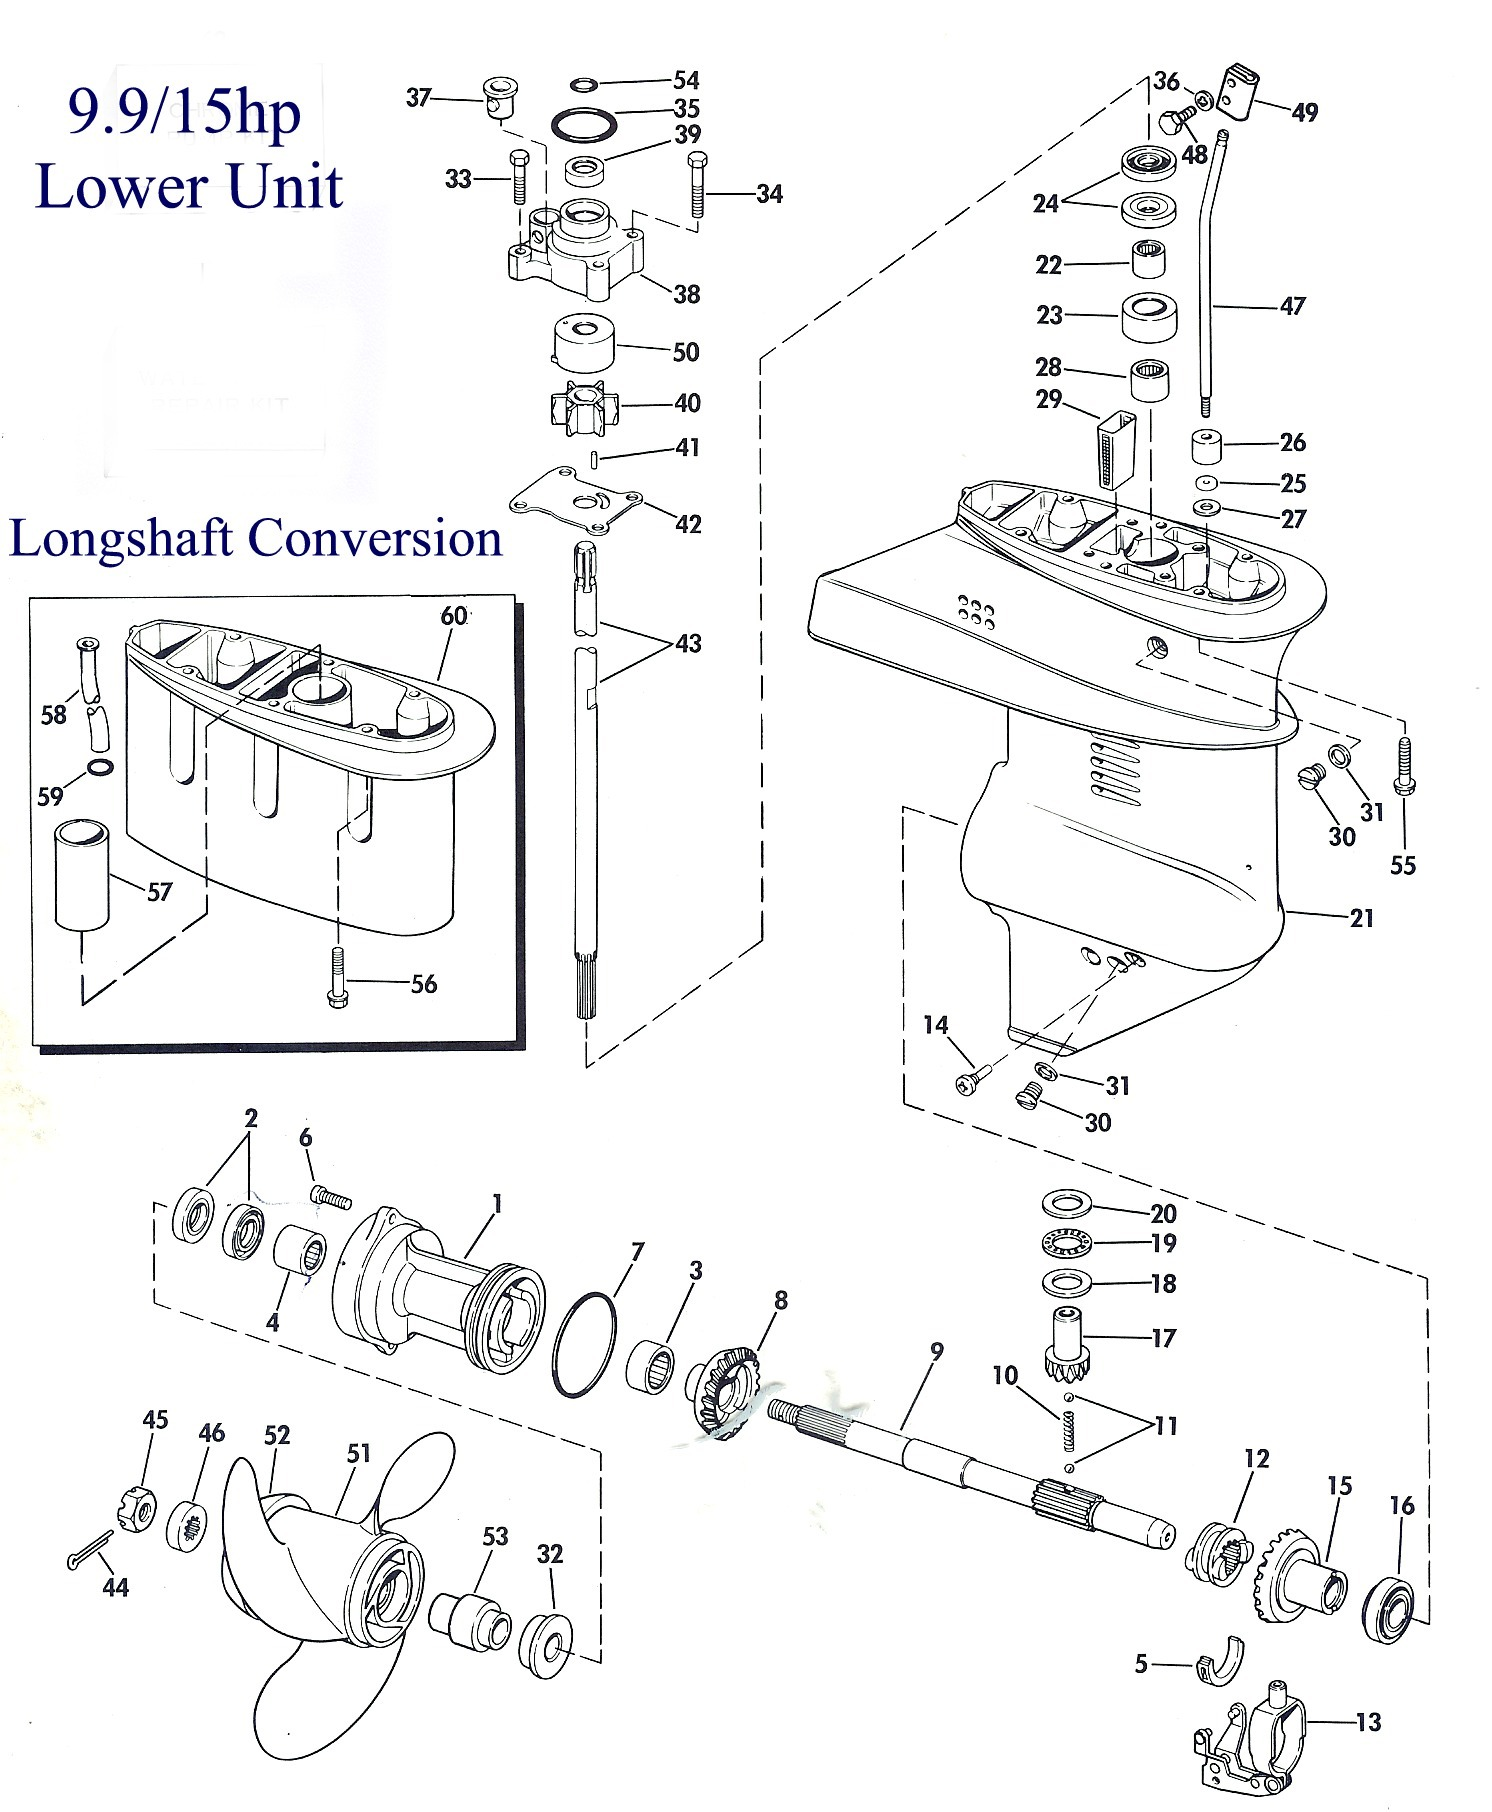 15 Hp Evinrude 2 Stroke Parts Diagram Free Wiring For You 70 Yamaha Lower Unit Rh Leeroysramblings Com Throttle Gears Schematic